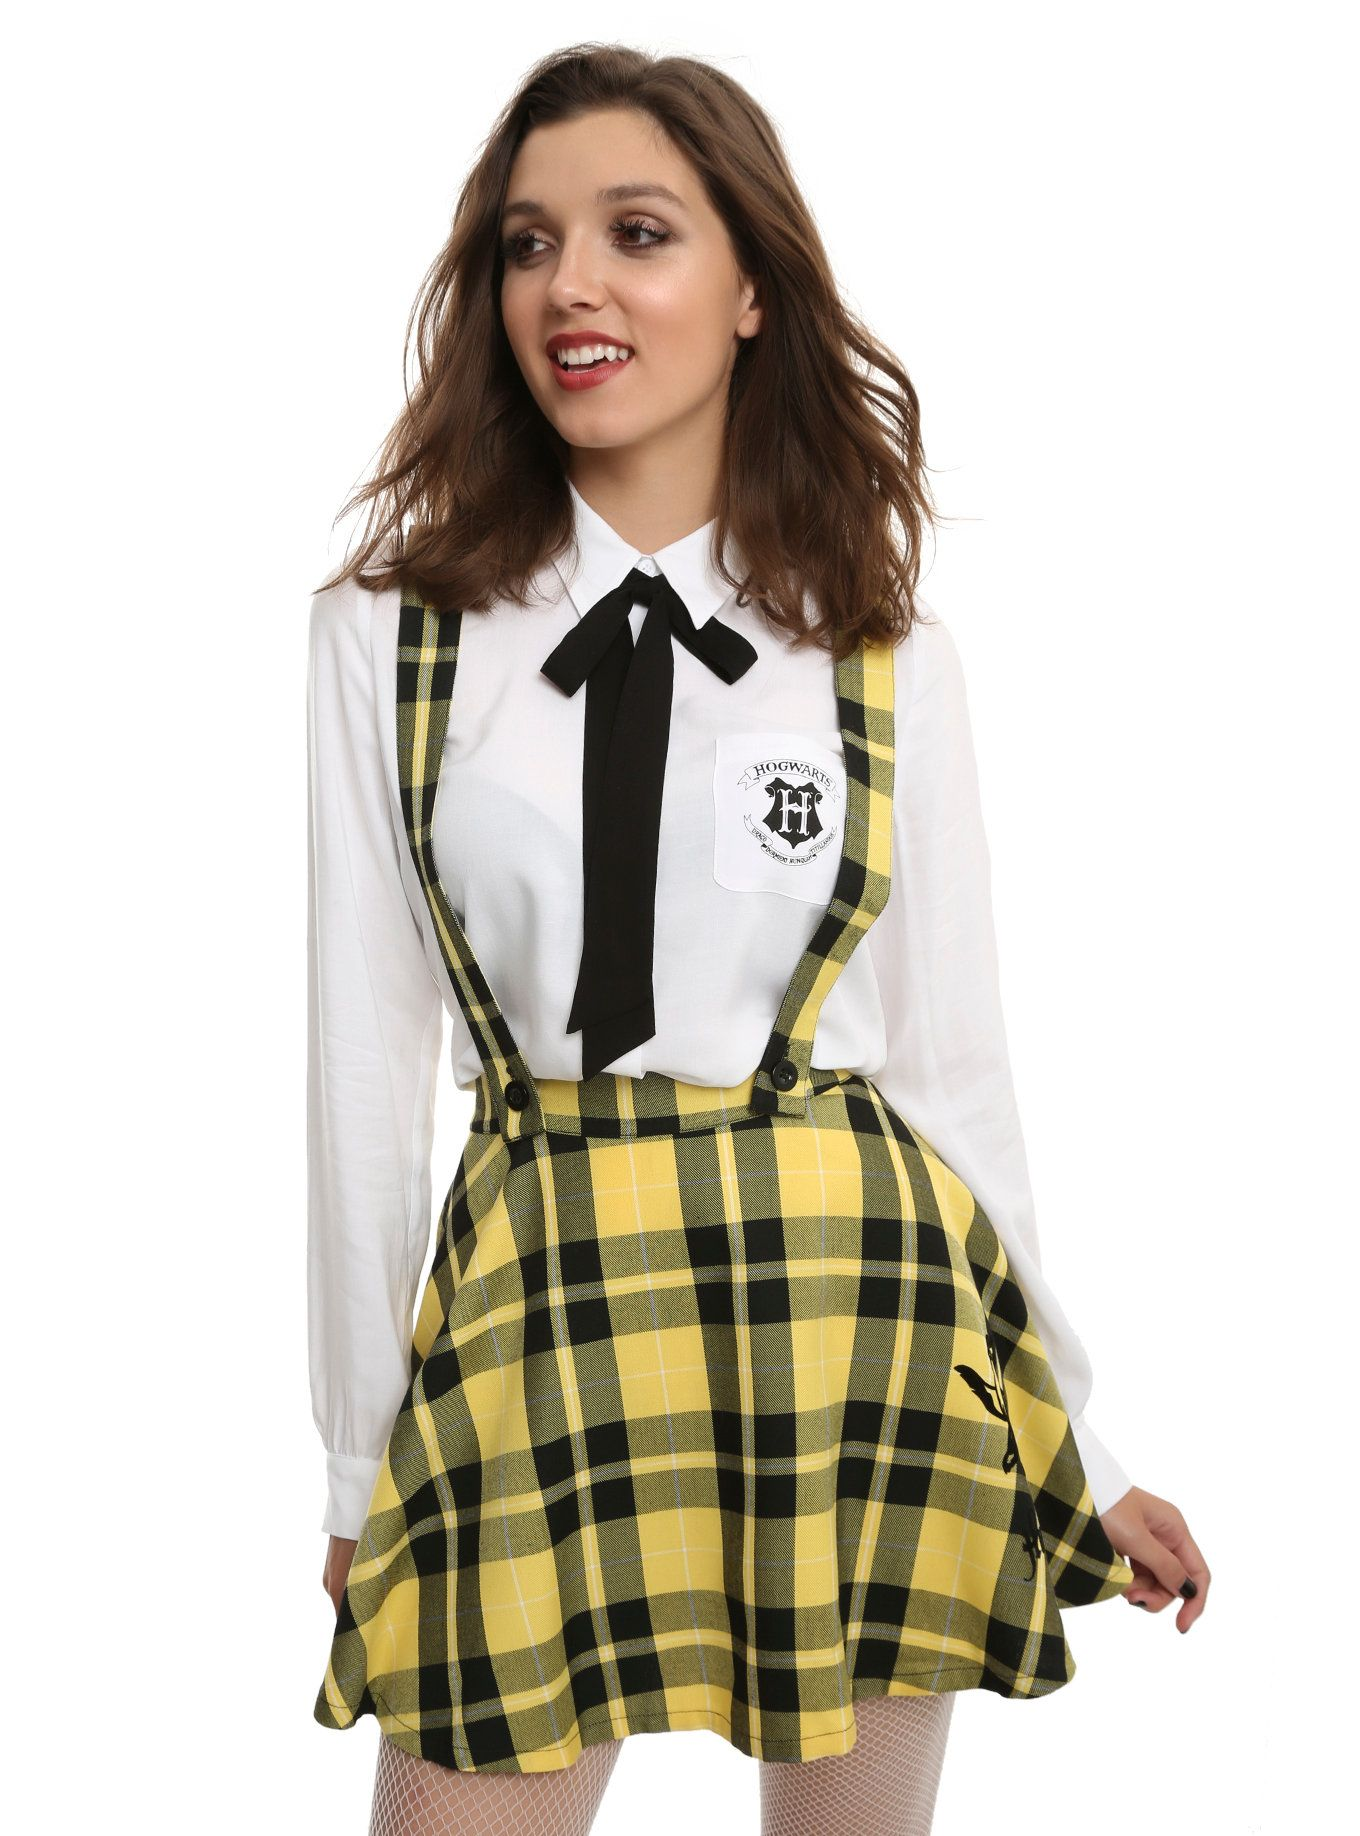 3ecaec1a65 This Hogwarts school skirt is anything but! In the colors of Hufflepuff,  this yellow plaid skirt features a flocked Hufflepuff badger and has  removable ...